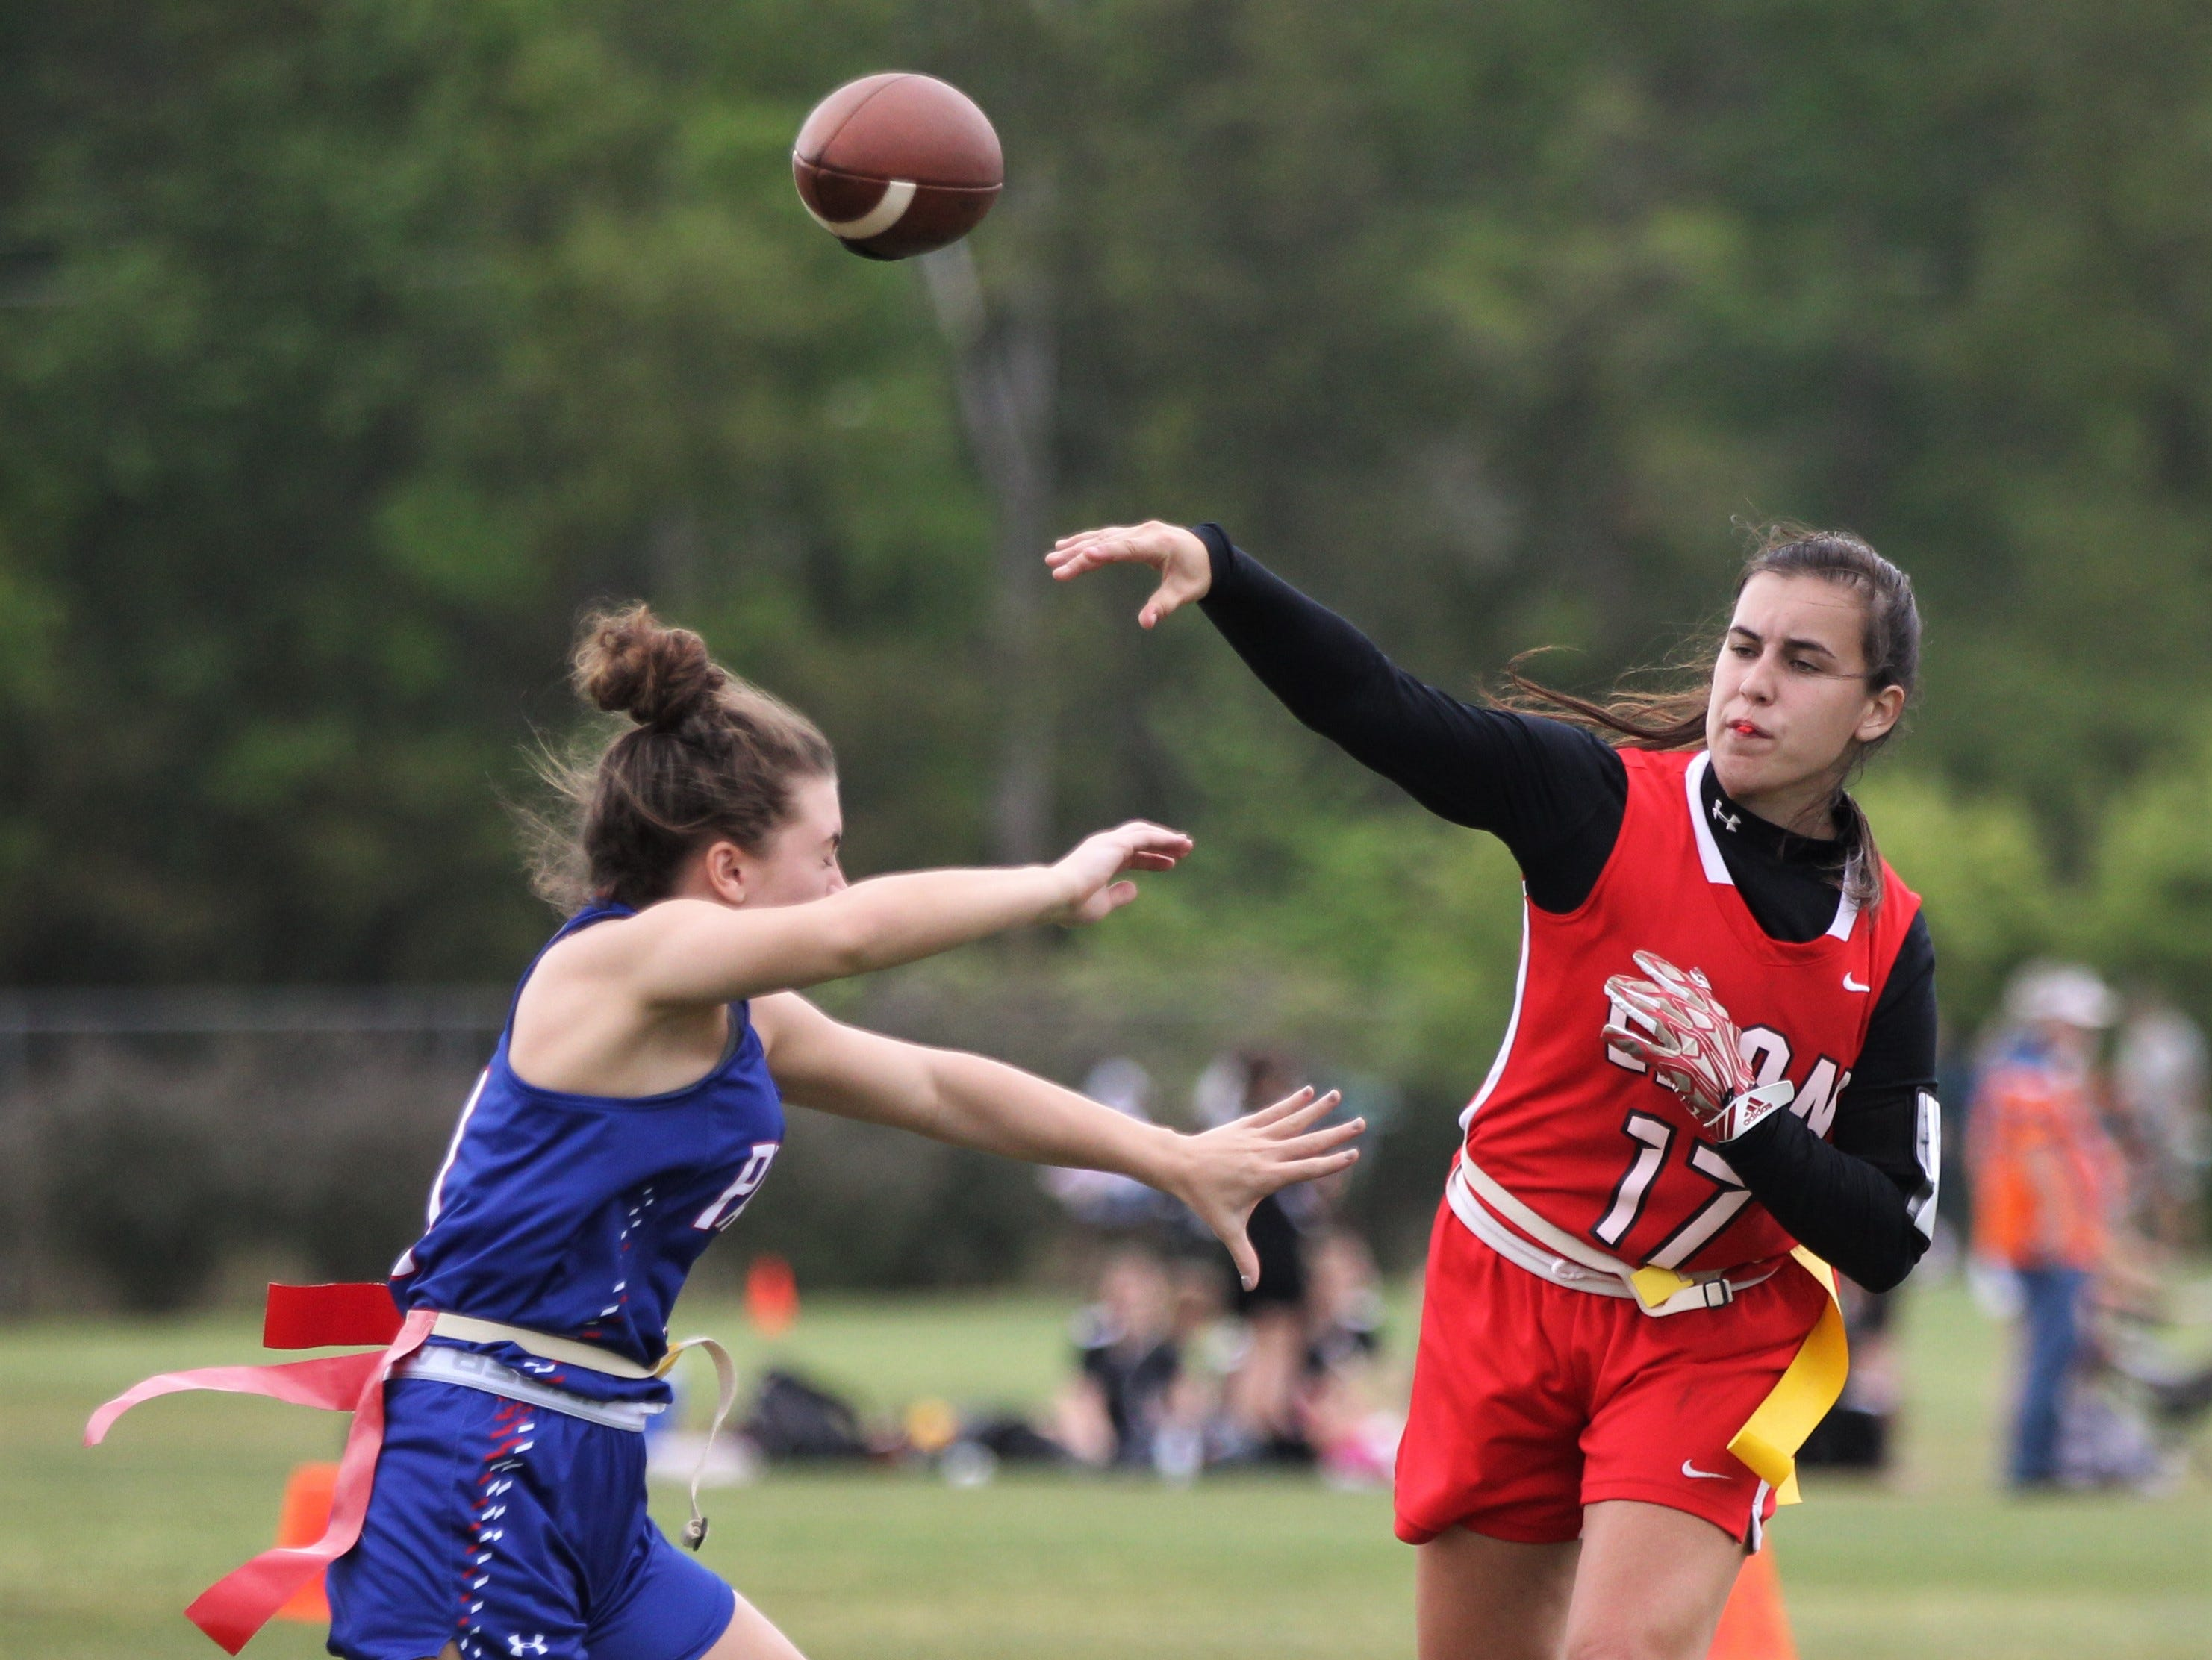 Leon quarterback Sophie Hightower throws a pass against Pace in the 2019 Capital City Classic at the FSU Rec SportsPlex on April 6, 2019.